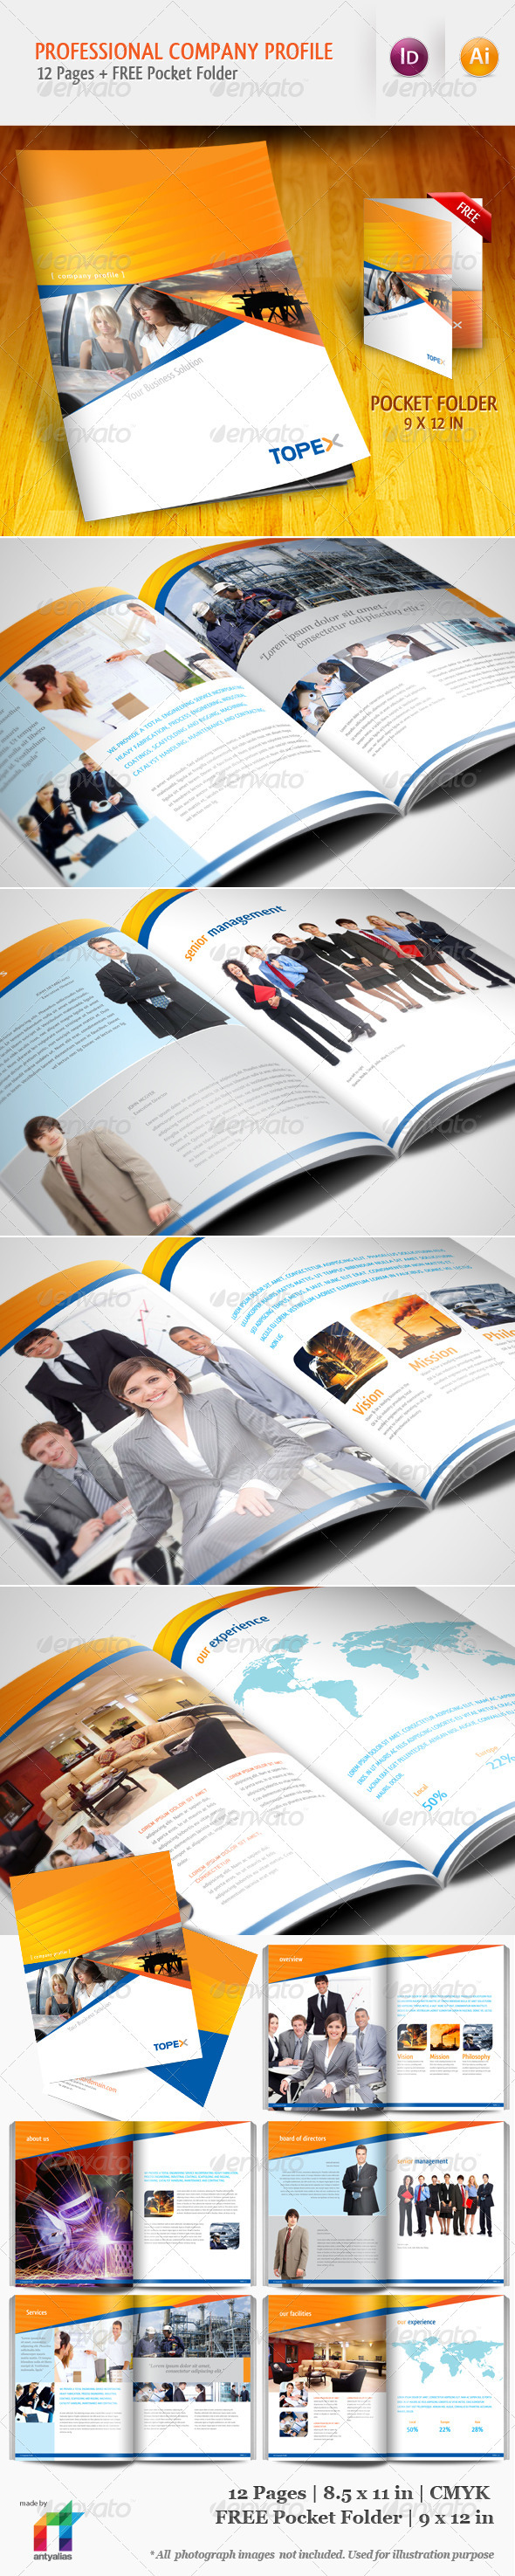 Professional Company Profile Brochure Template